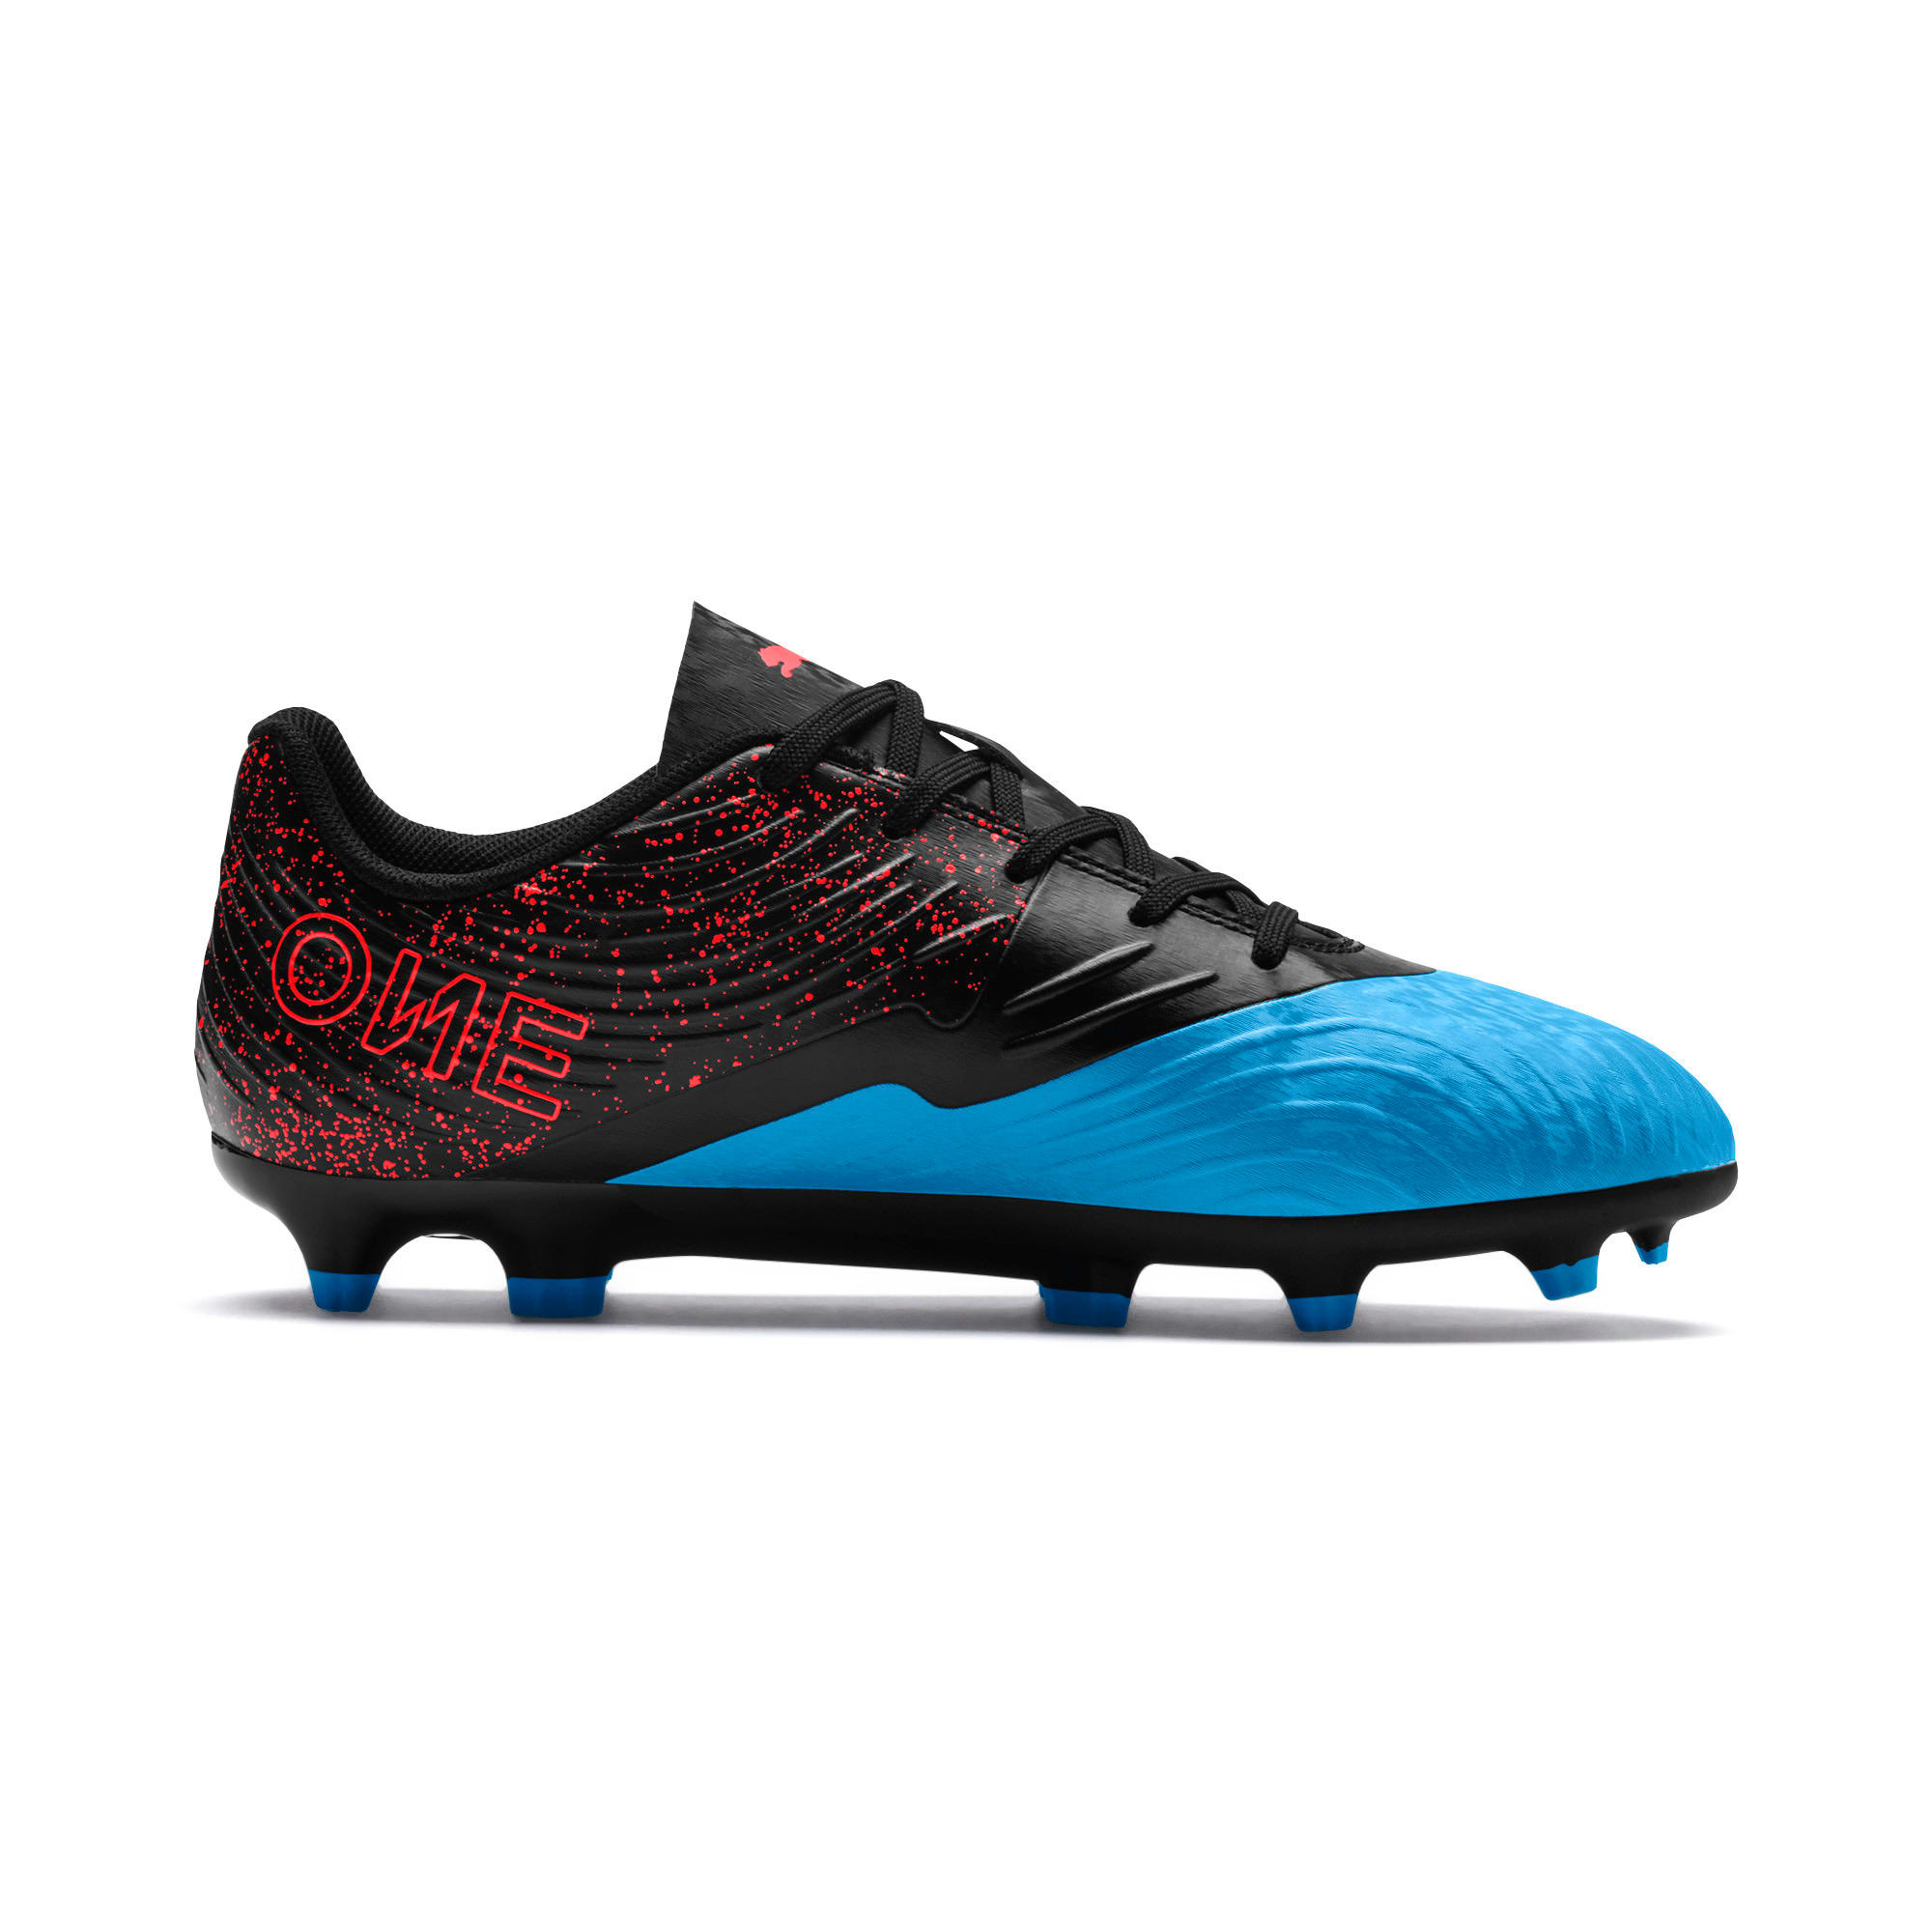 Thumbnail 5 of PUMA ONE 19.4 FG/AG Soccer Cleats JR, Bleu Azur-Red Blast-Black, medium